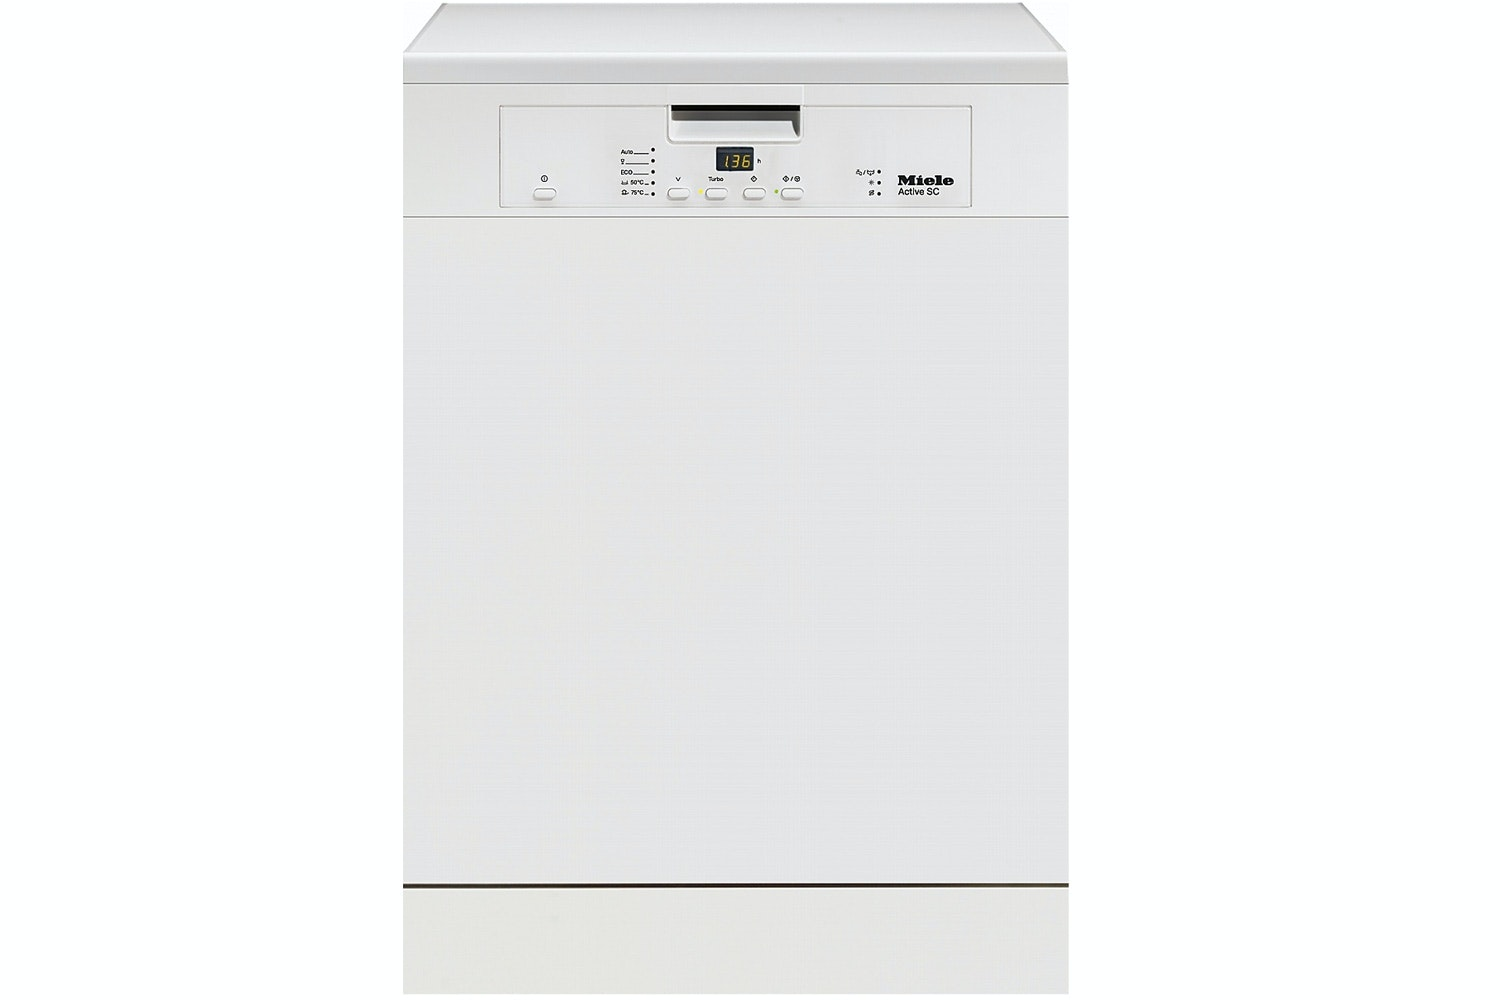 Miele G 4203 SC Active  Freestanding dishwashers   with cutlery tray for maximum convenience at an attractive entry level price